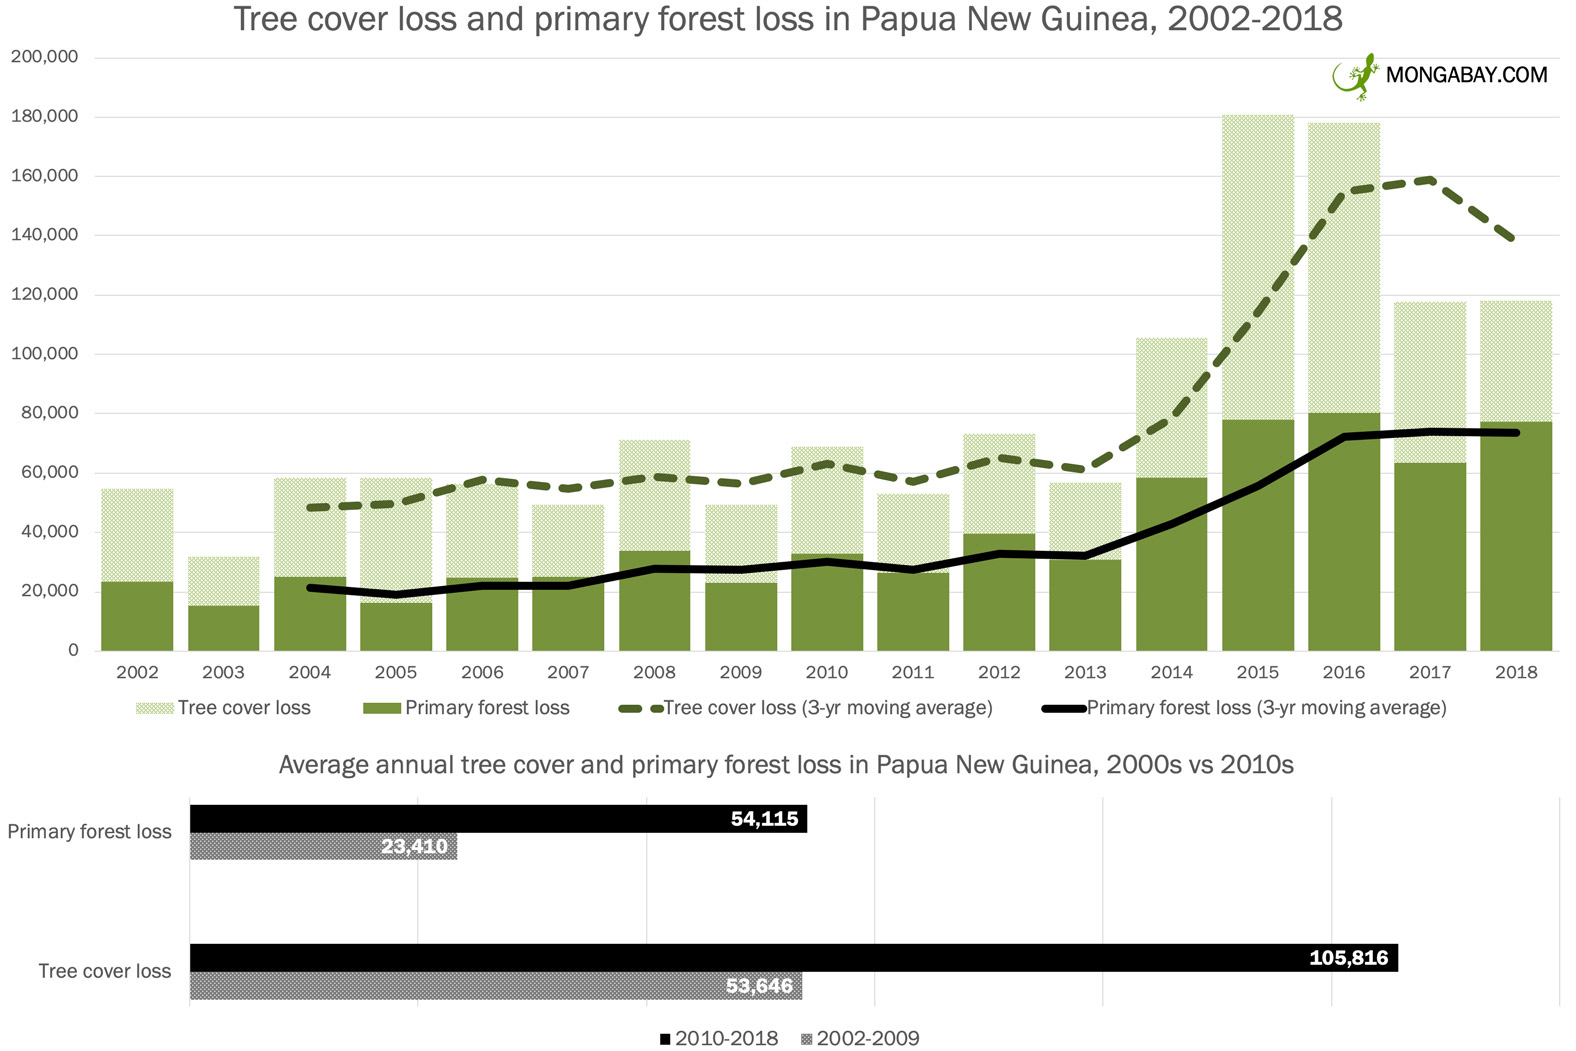 Tree cover loss and primary forest loss in Papua New Guinea from 2002 to 2018 according to data from Hansen et al 2019.